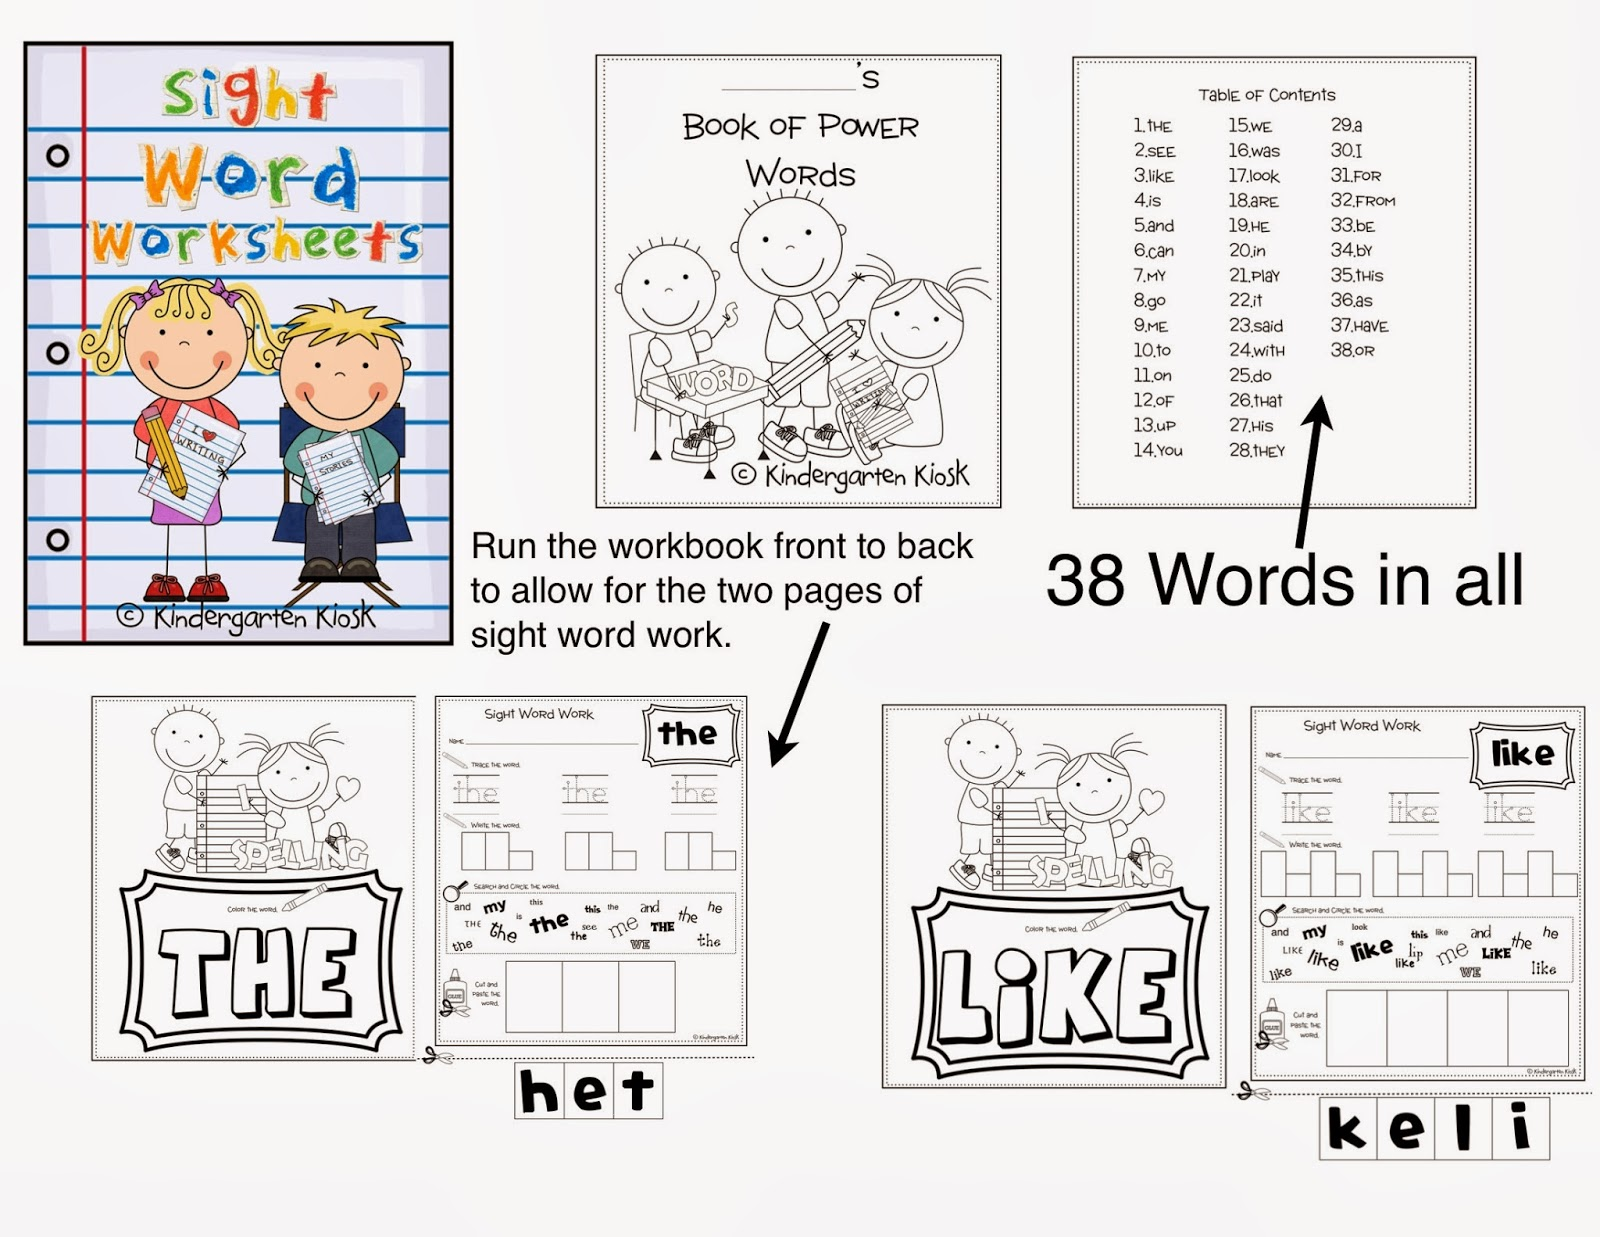 Kindergarten Kiosk Sight Word Worksheets Or Workbook